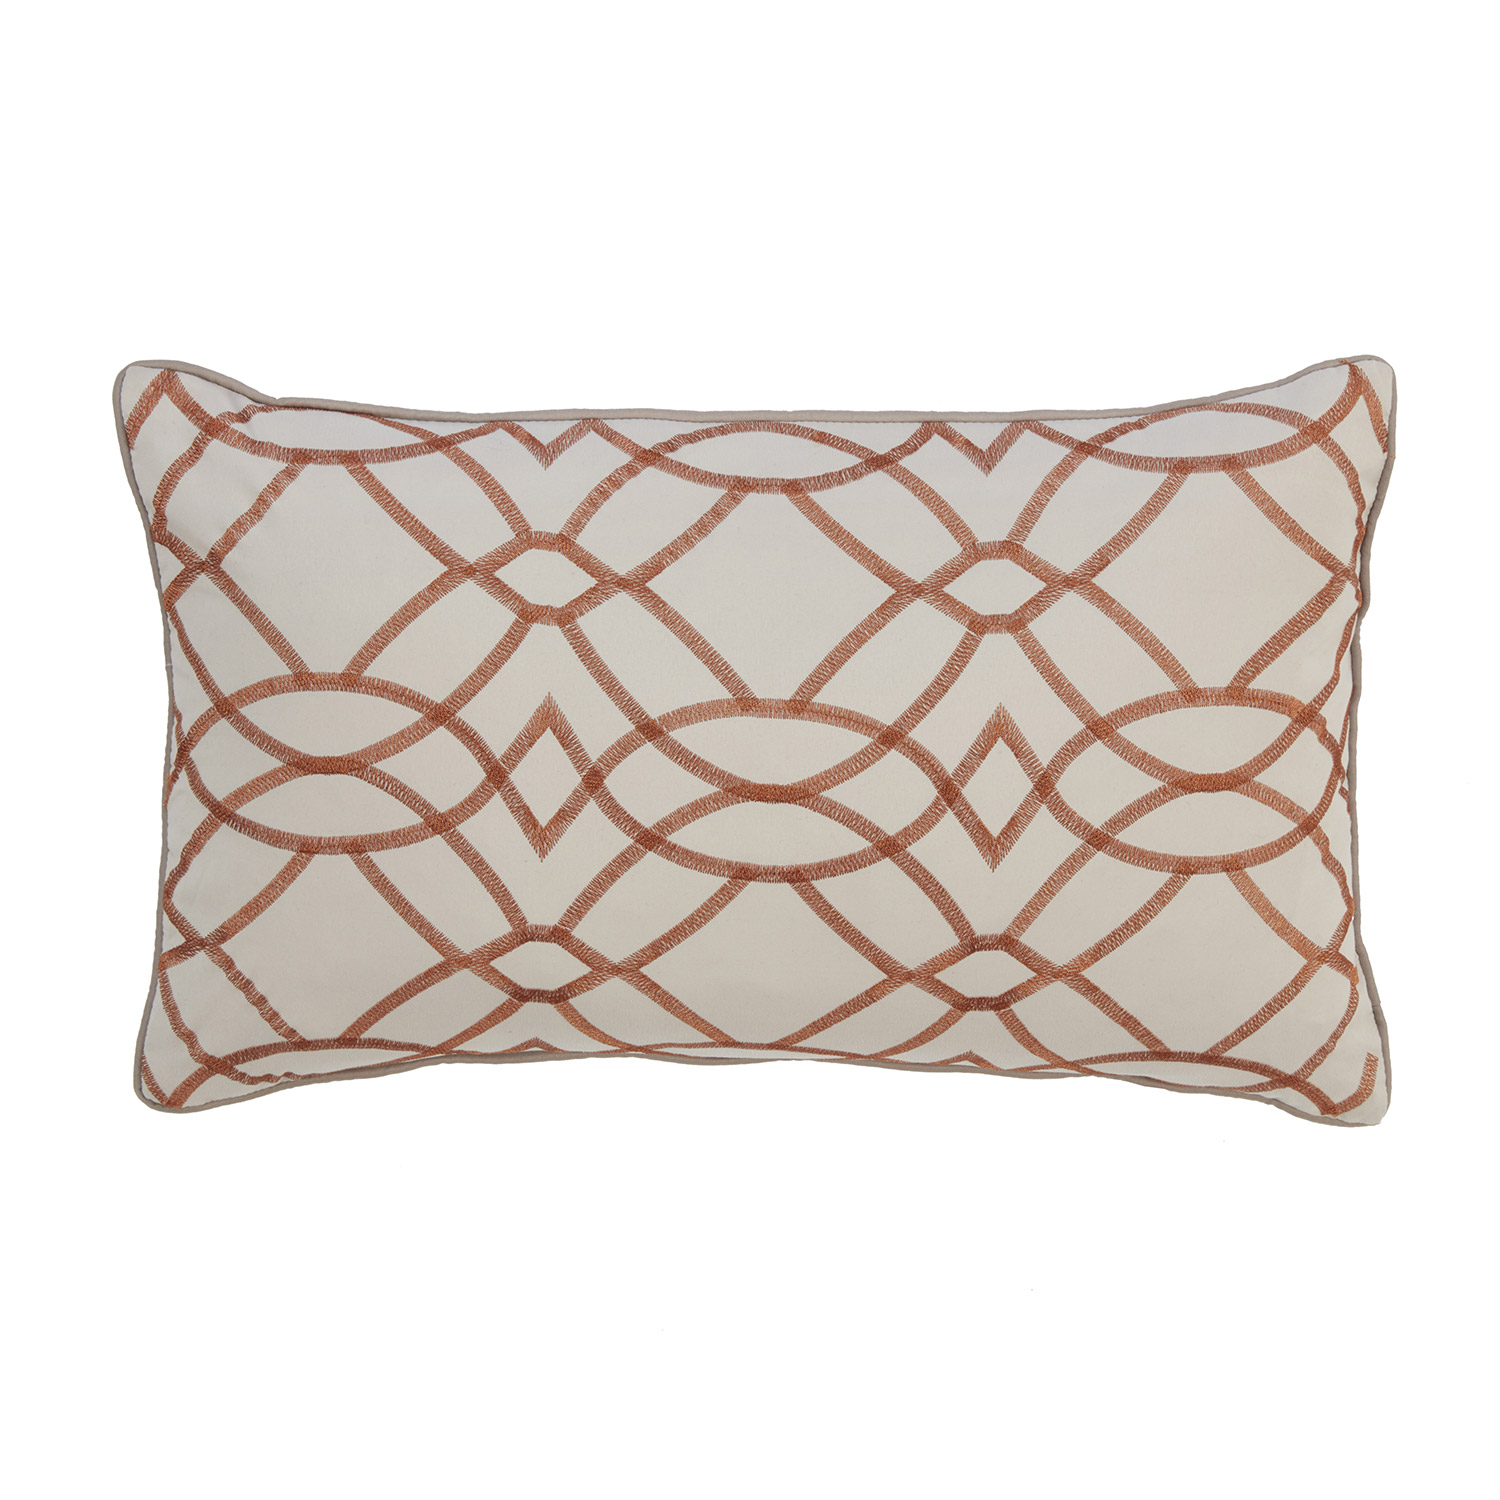 Alex Luxury Quilted Filled Boudoir Cushion